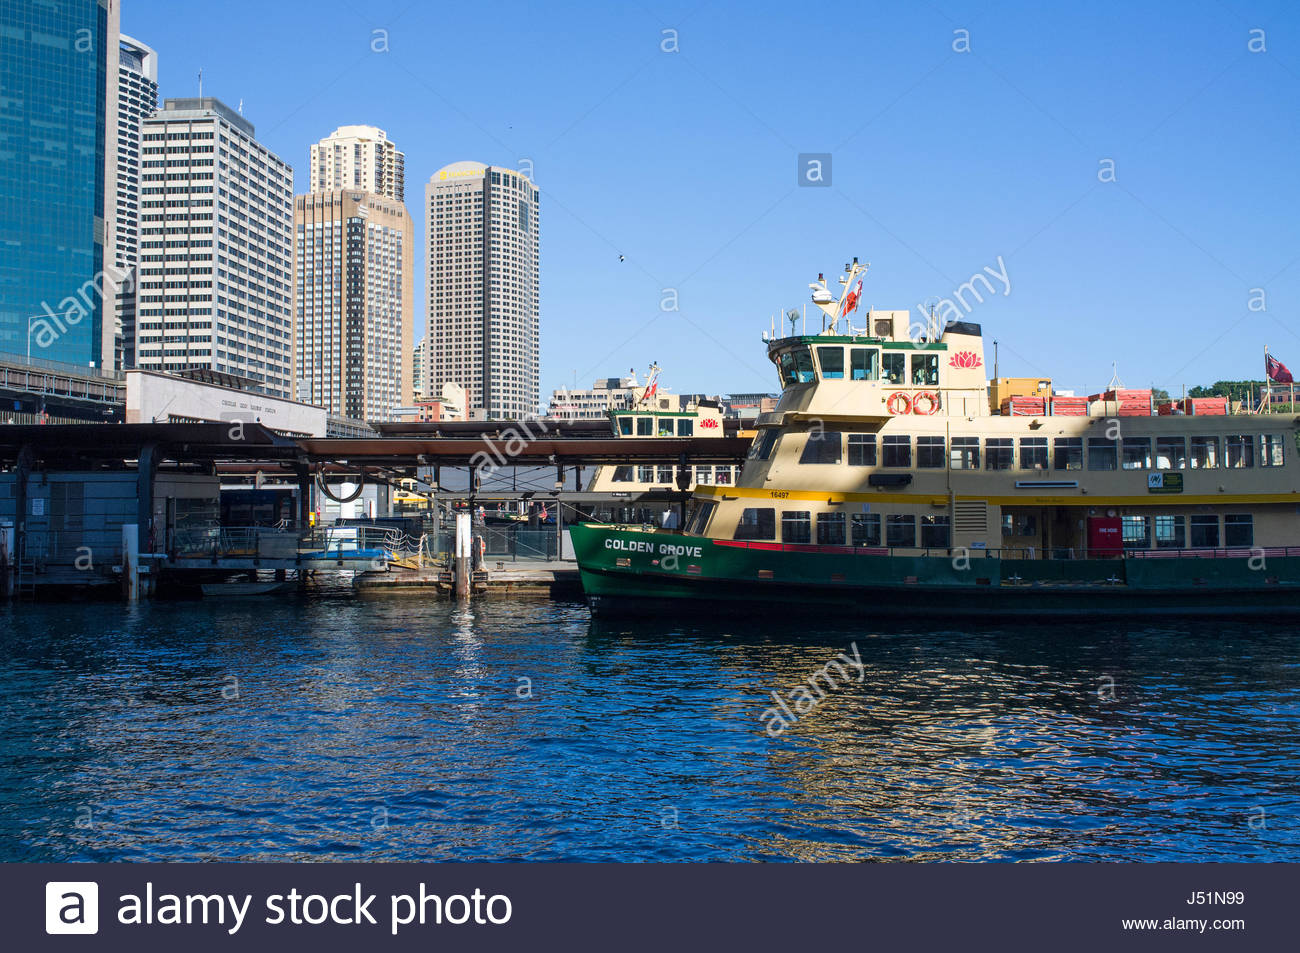 Circular Quay Ferry Wharfs, Sydney Cove, Central Business District, Sydney, New South Wales, Australia - Stock Image